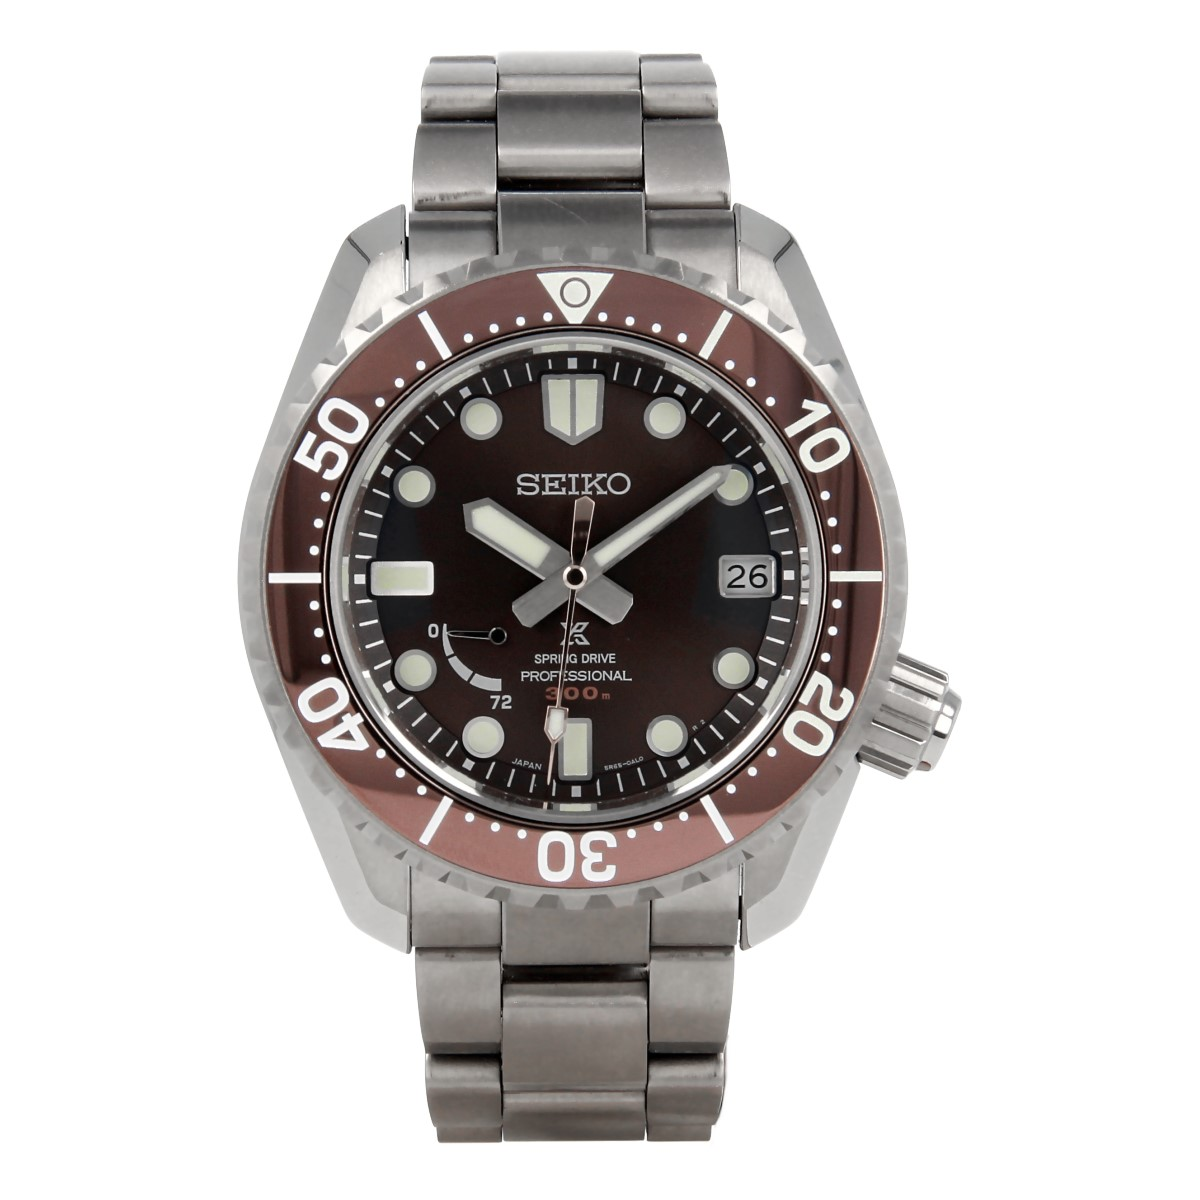 Seiko Prospex LX SNR041J1 Limited Edition | Buy second hand Seiko watches